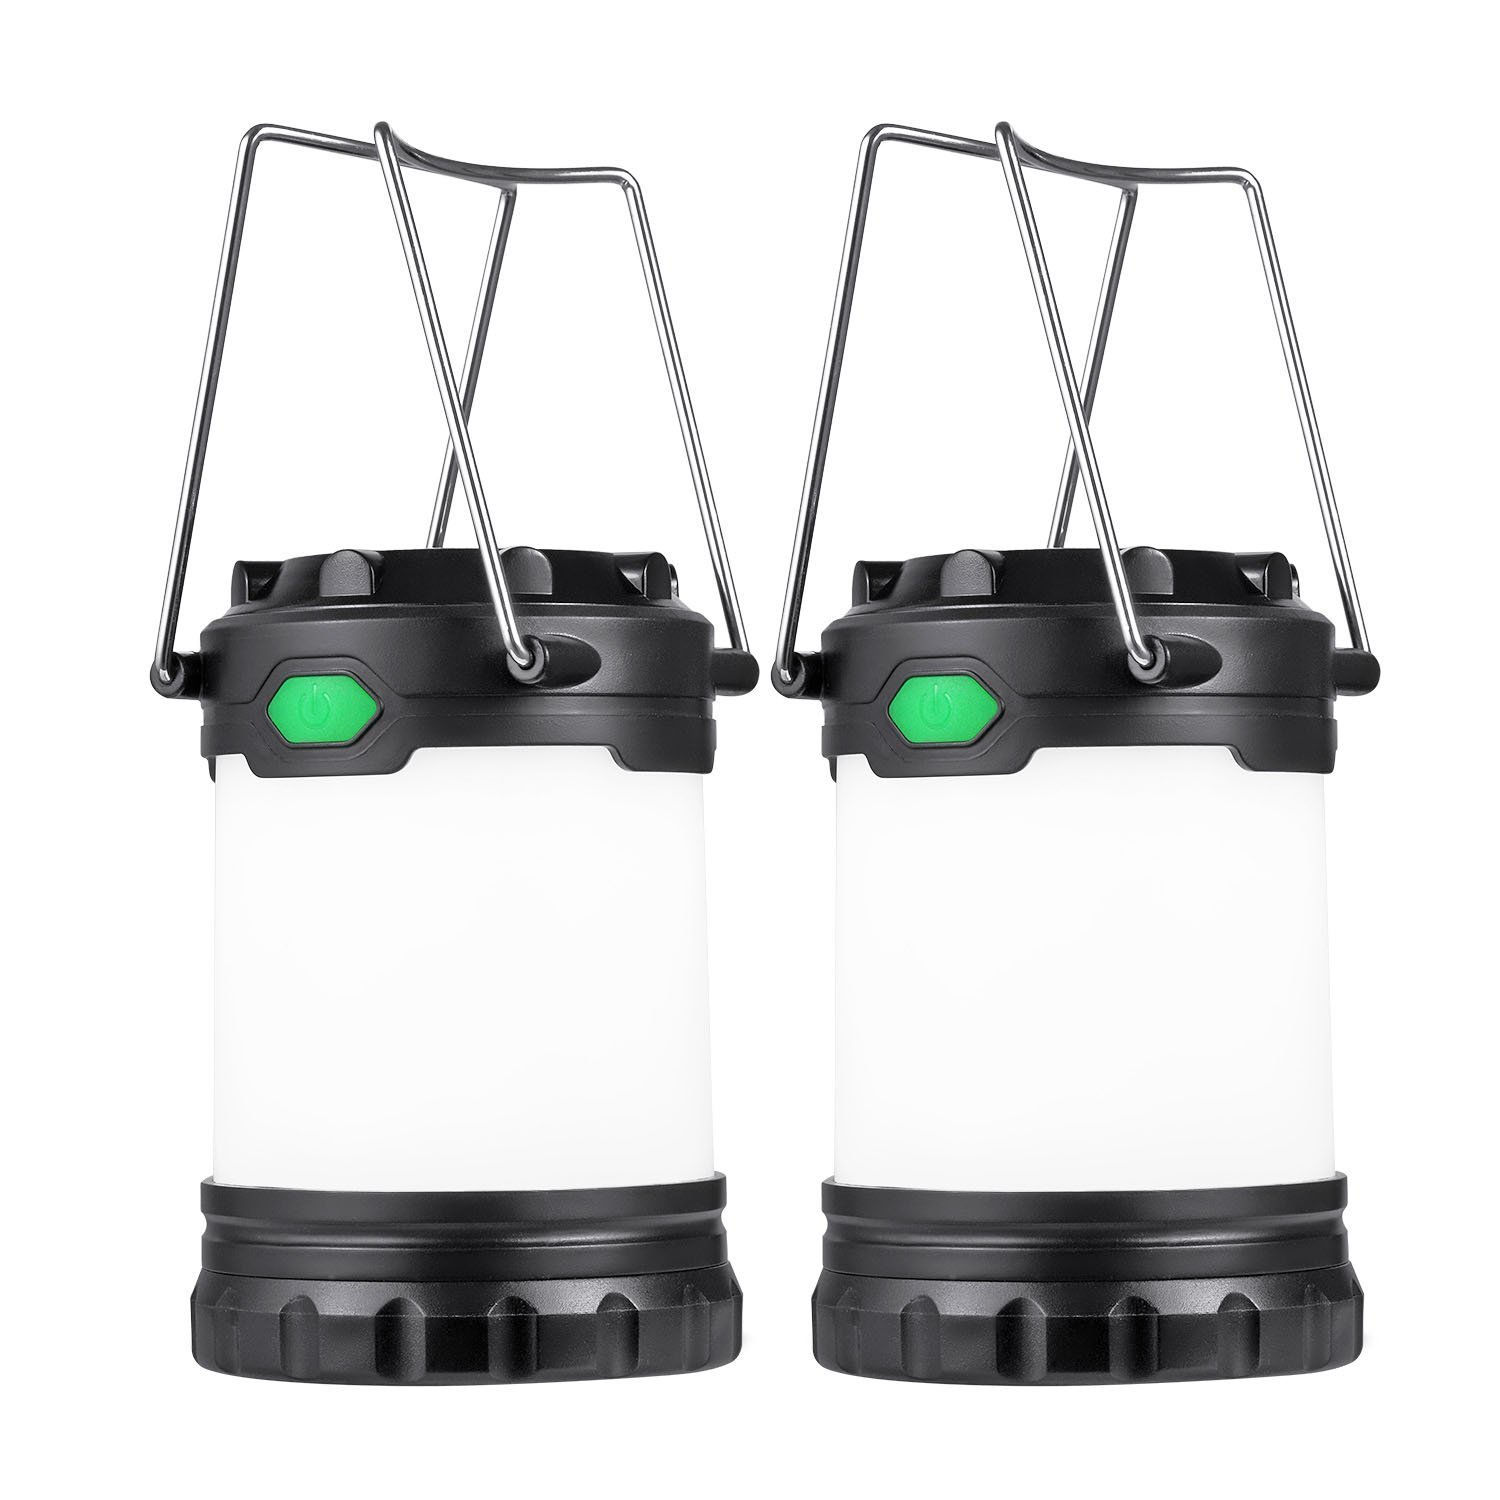 Hillmax 2 Pack Camping Lantern with White Light,Warm Light and Mixture Portable Outdoor Light Operated by AAA or AA Batteries for Camping, Hiking and Power Outage(Battery Included)